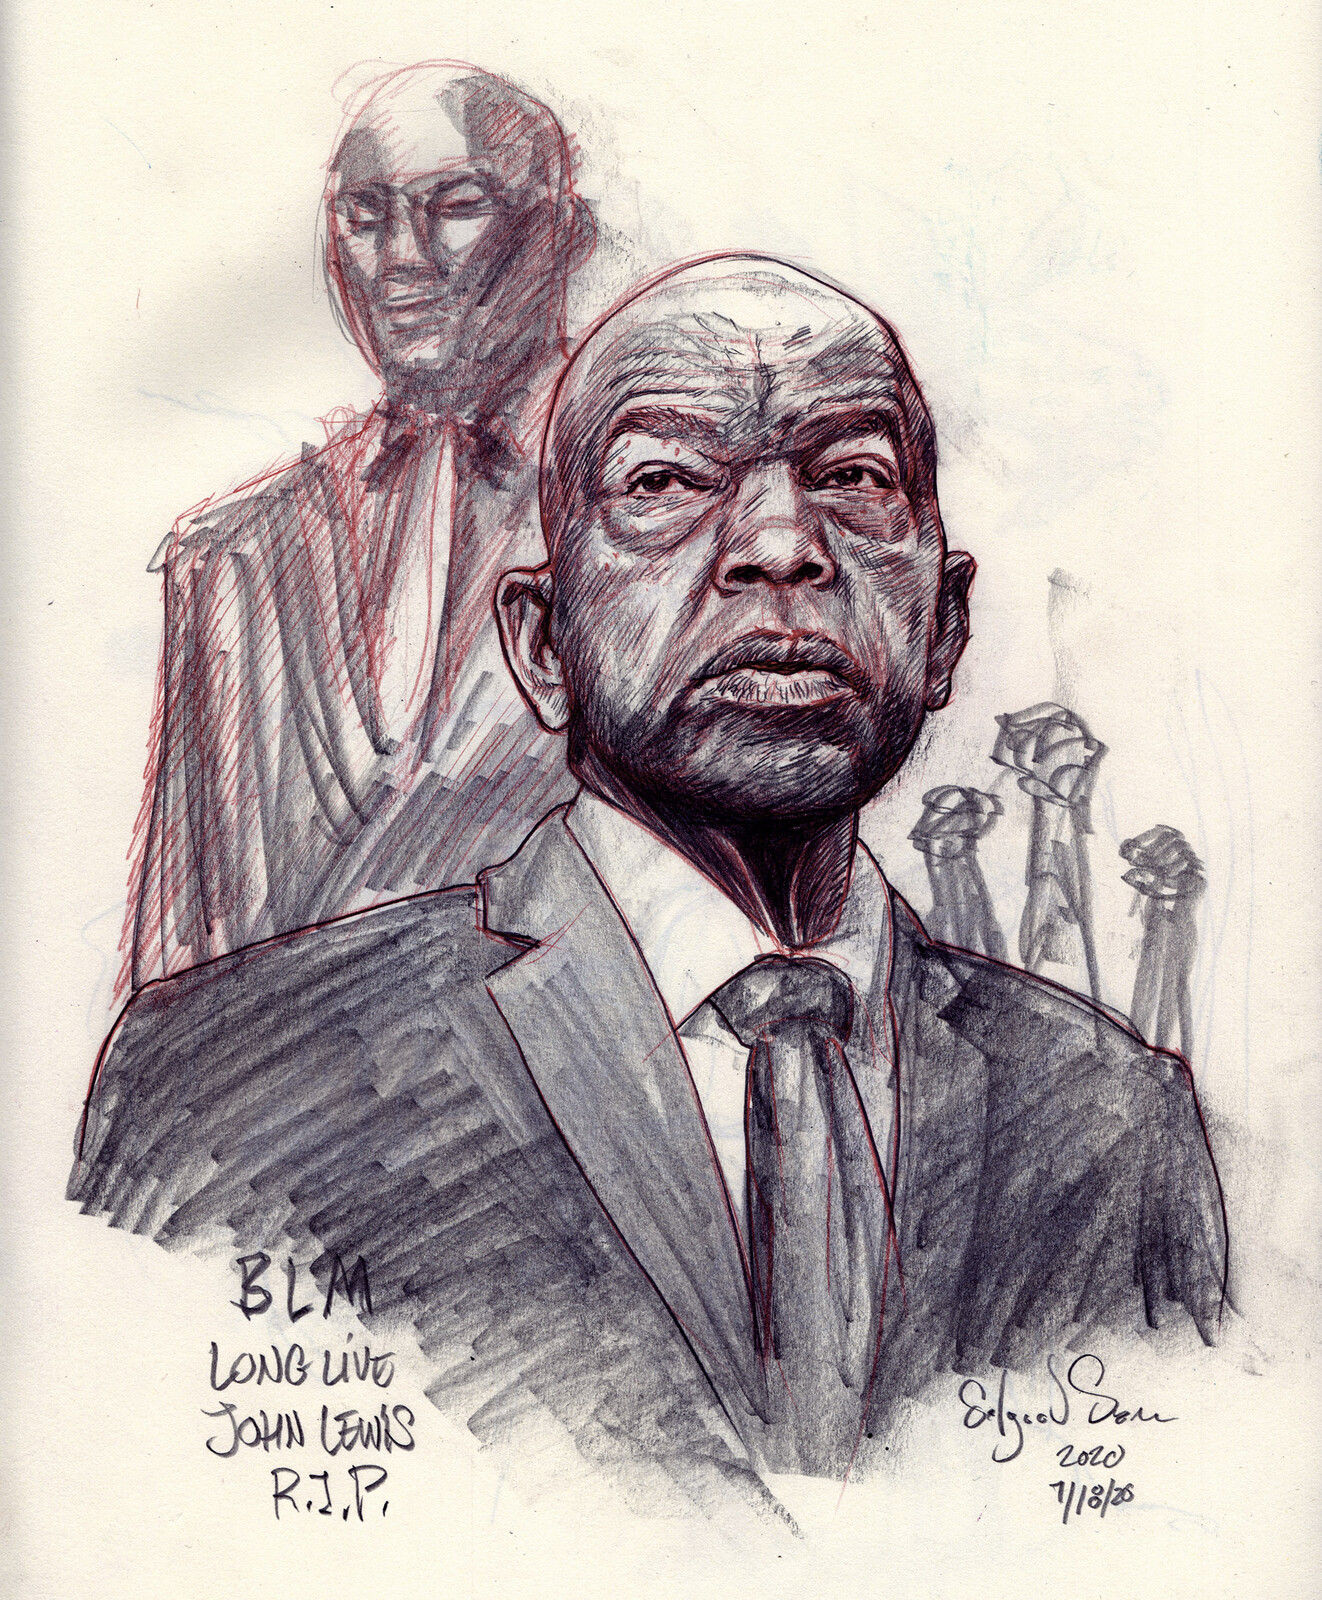 John Lewis sketch in graphite and col-erase.